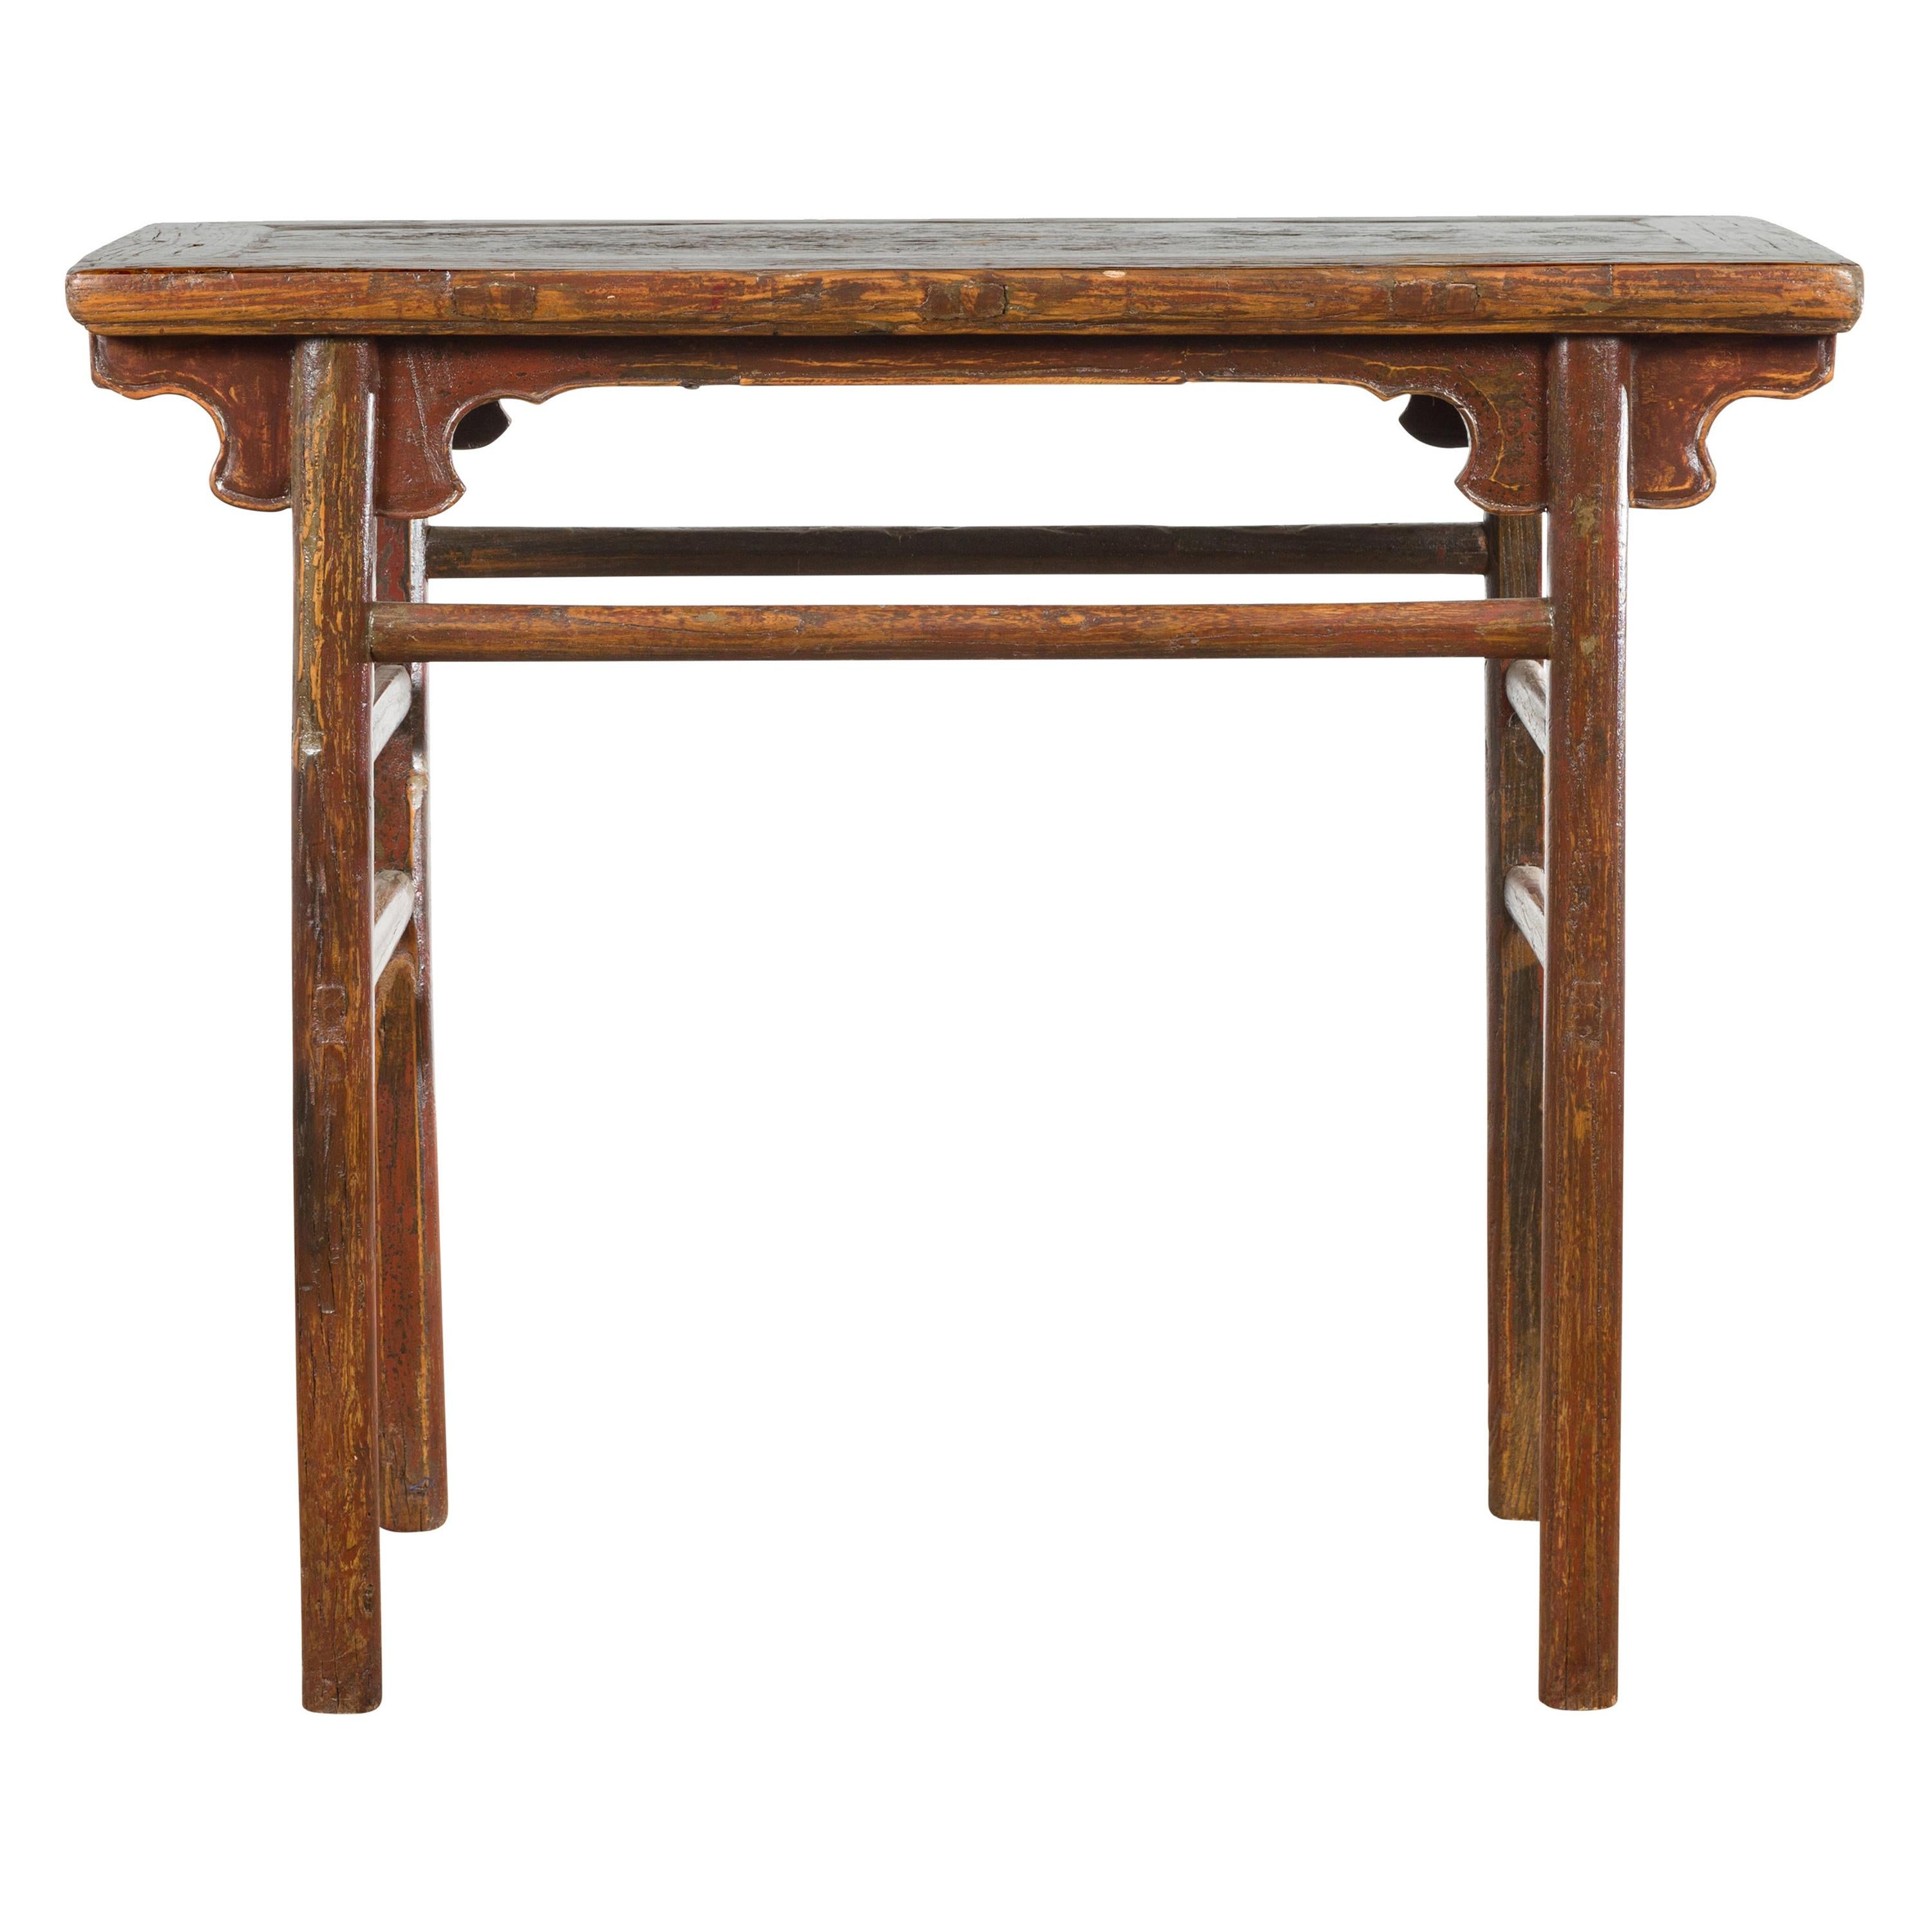 Chinese 19th Century Qing Dynasty Period Console Table with Carved Spandrels